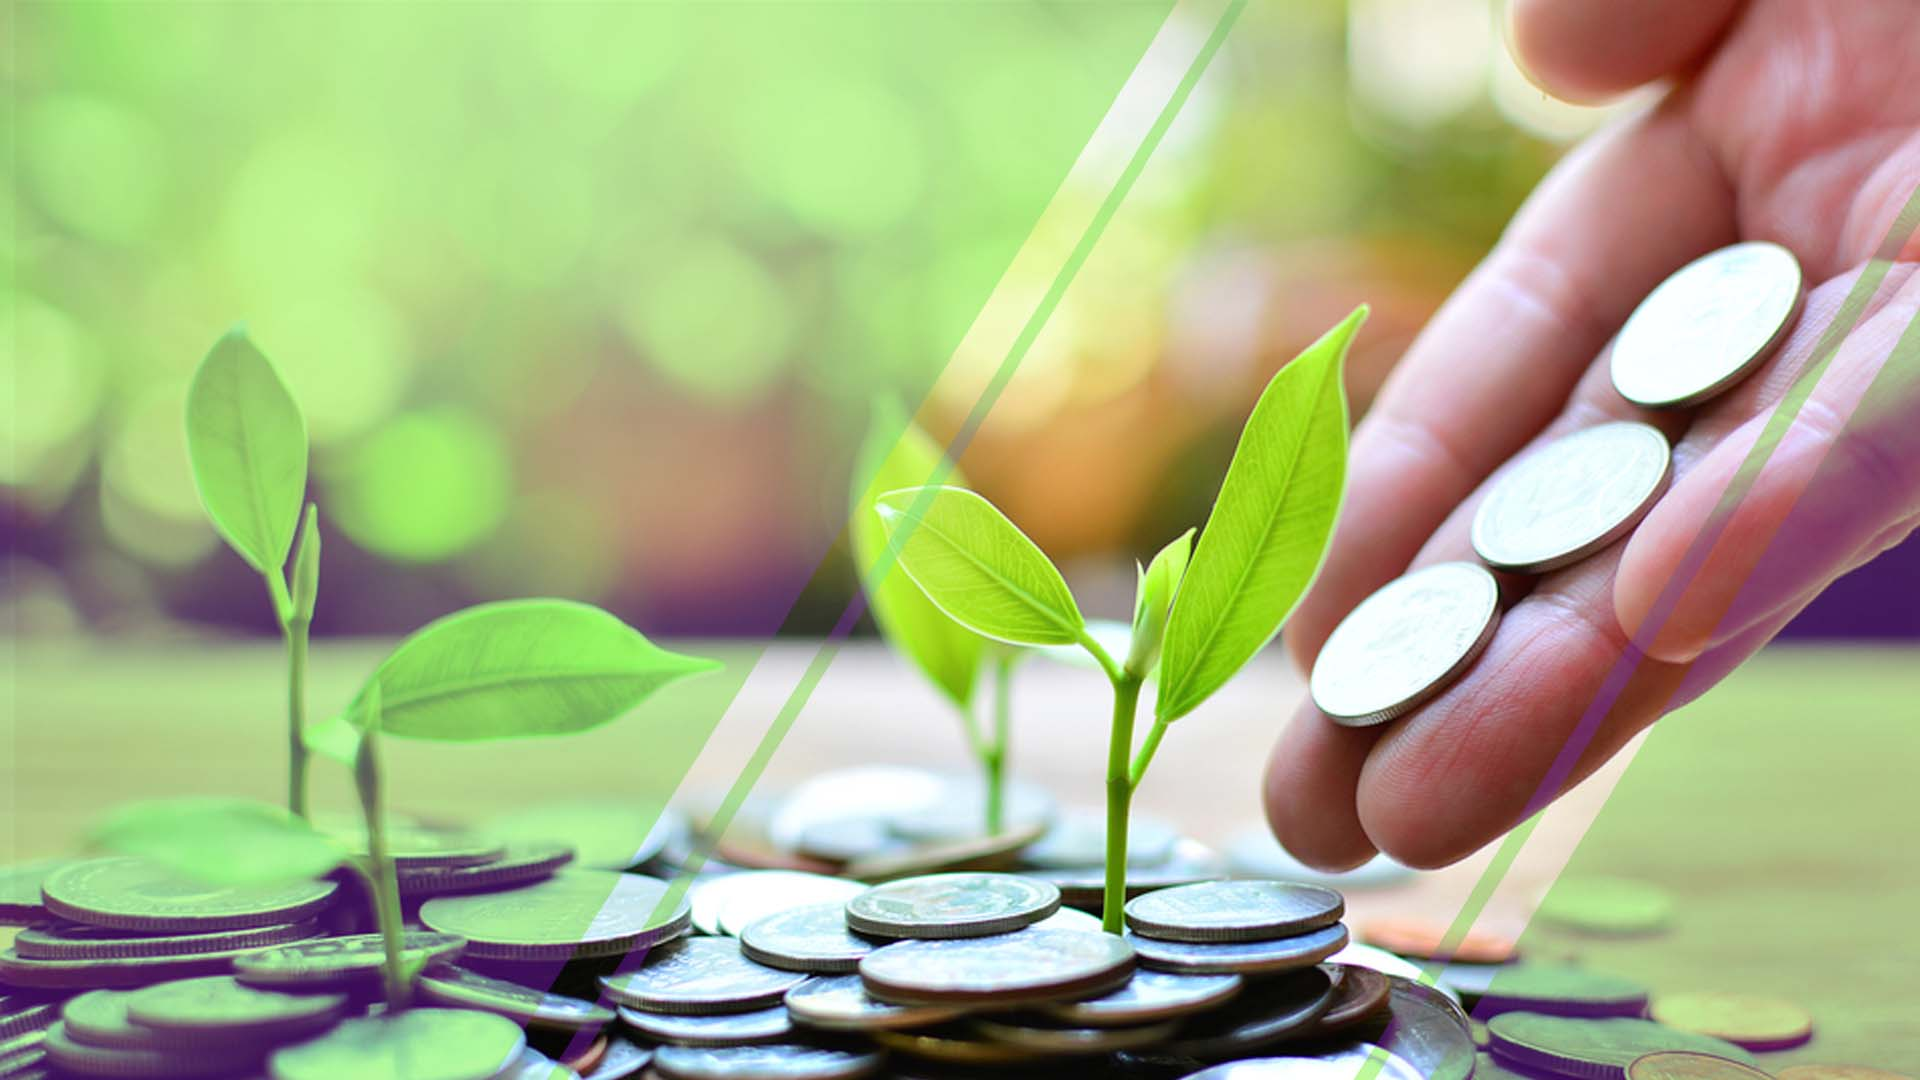 The 5 safest investments you can make in your life